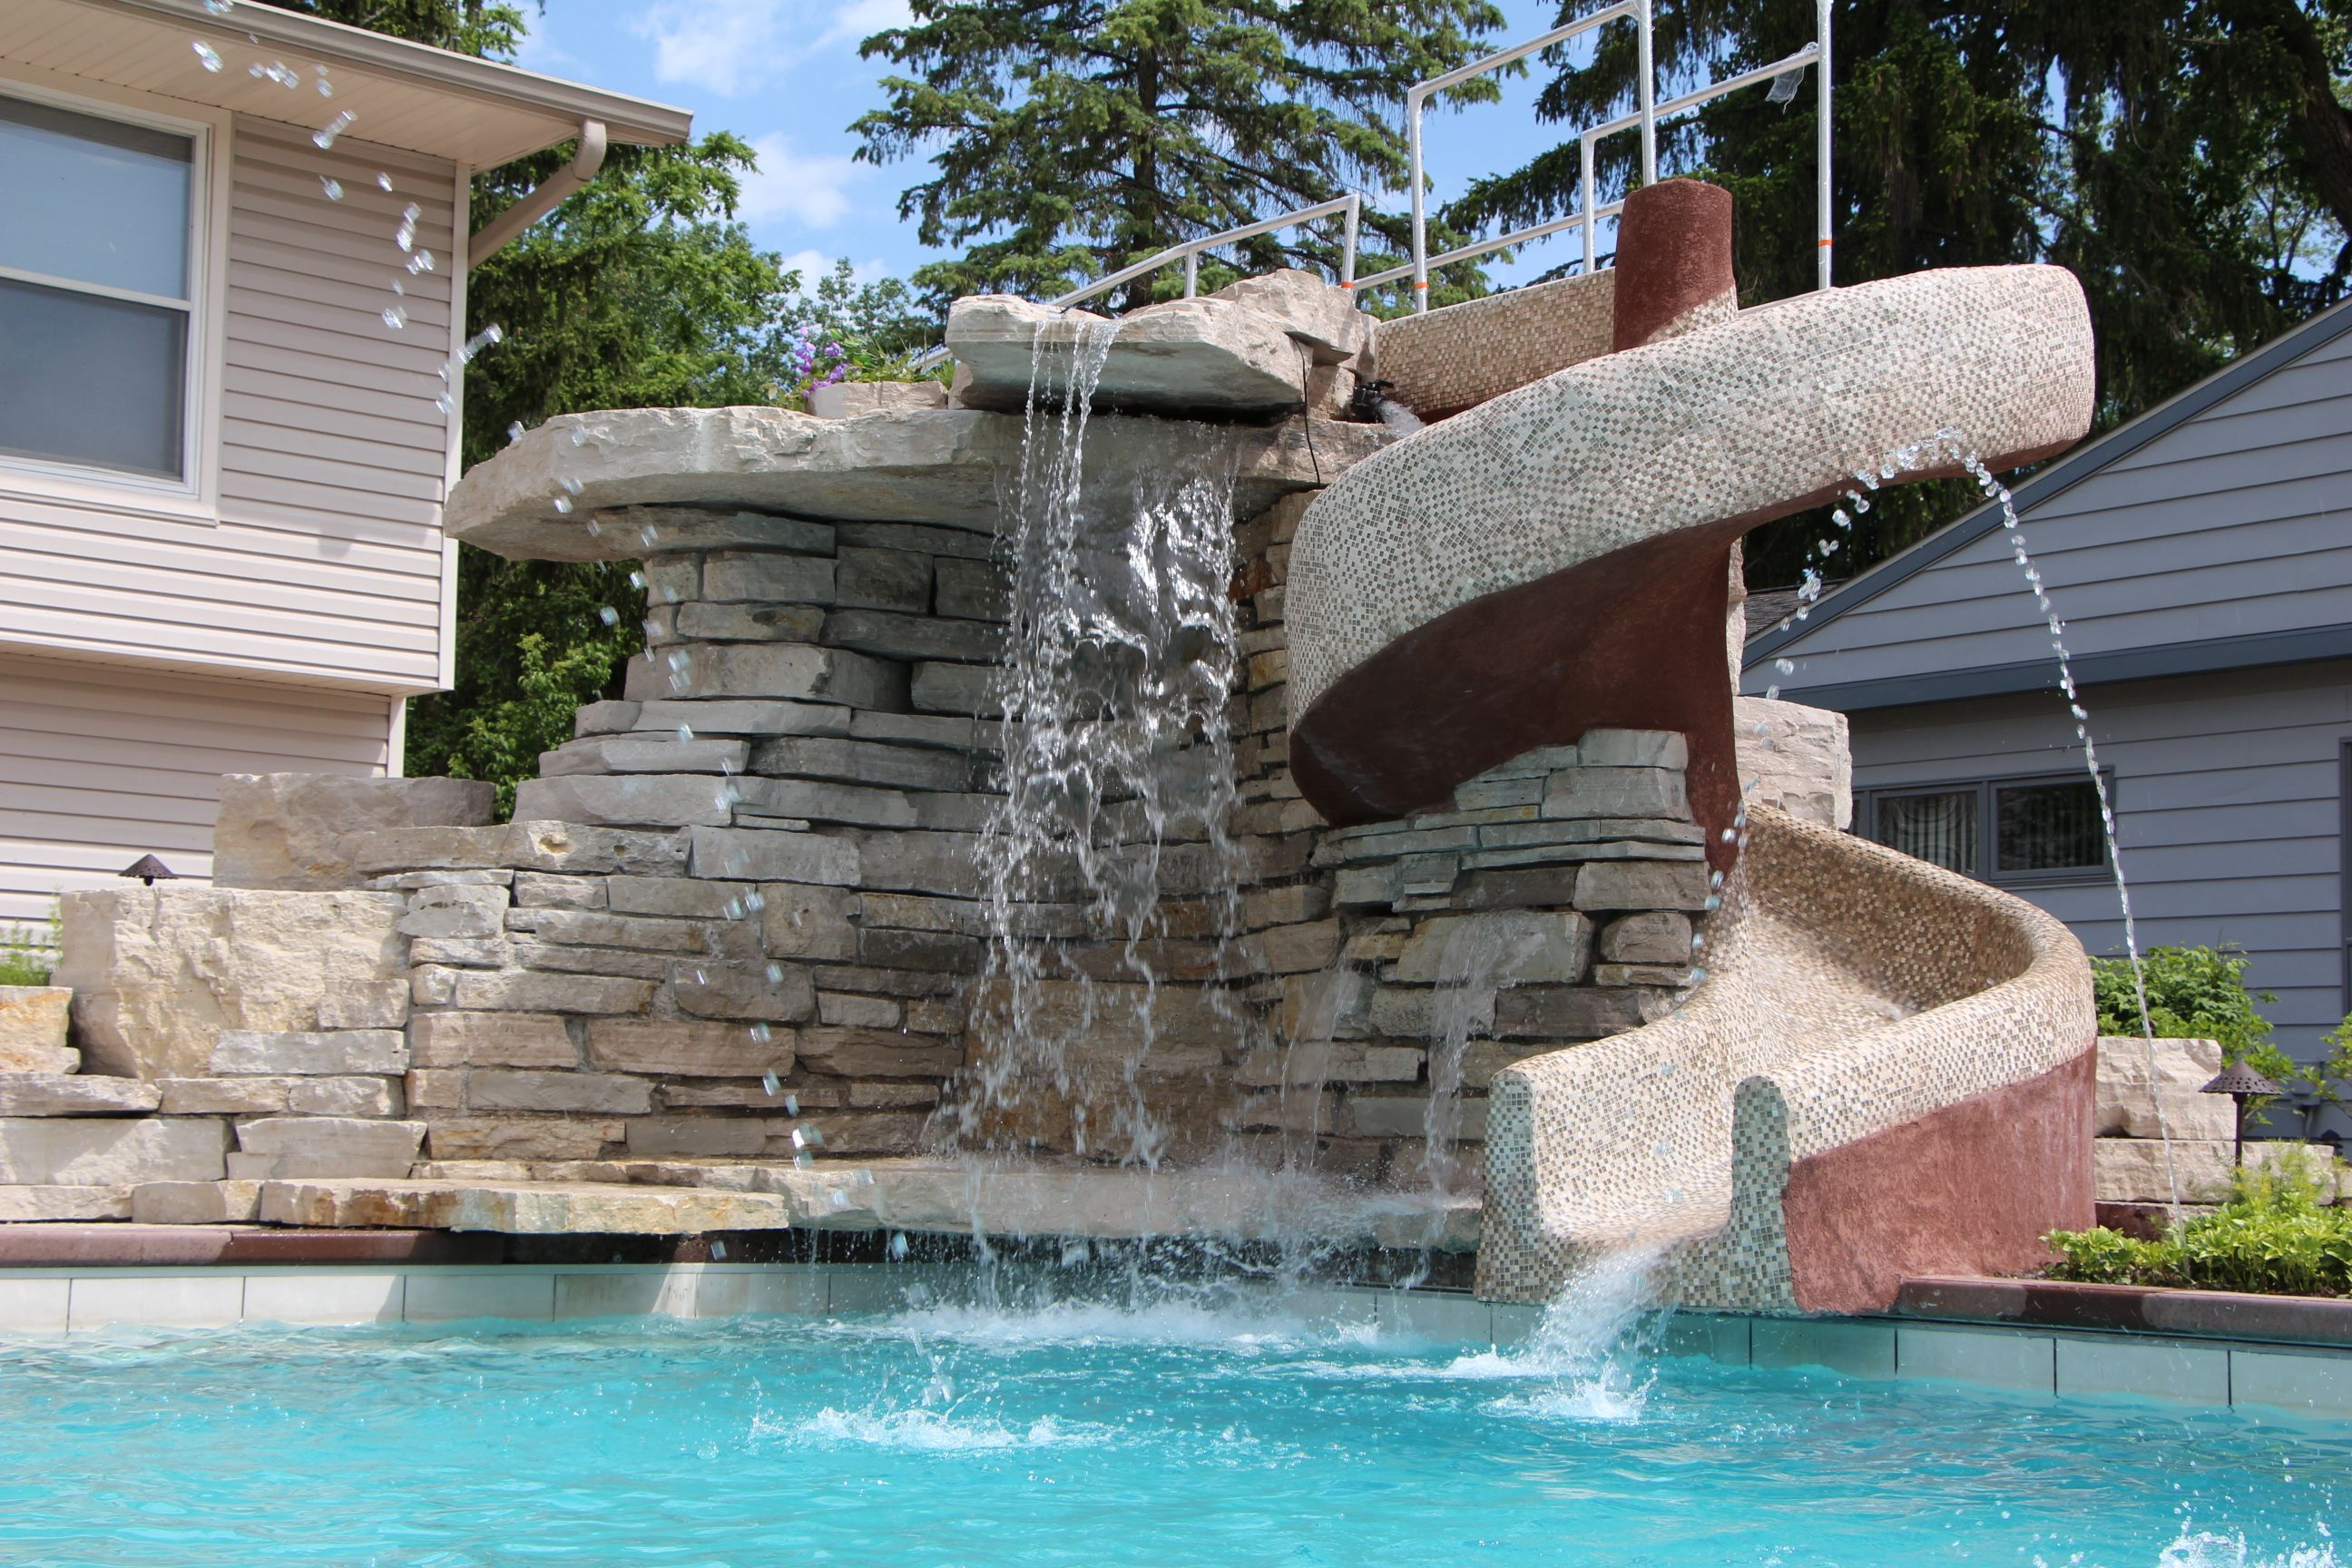 custom waterfall and slide quantus pools quantuspoolscom 847 907 4995 - Swimming Pools With Waterfalls And Slide